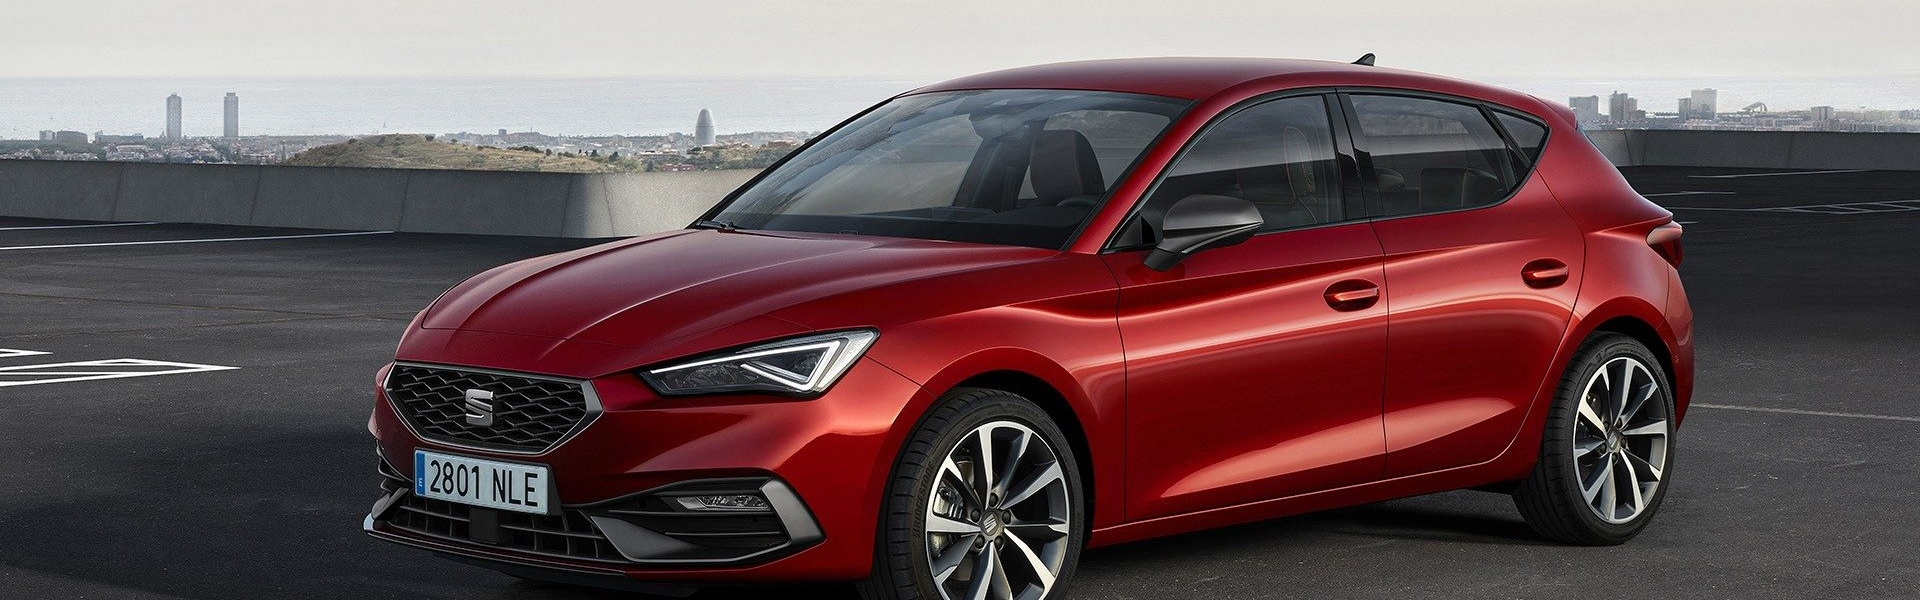 2020-Seat-Leon-Hatch-Estate-6.jpg